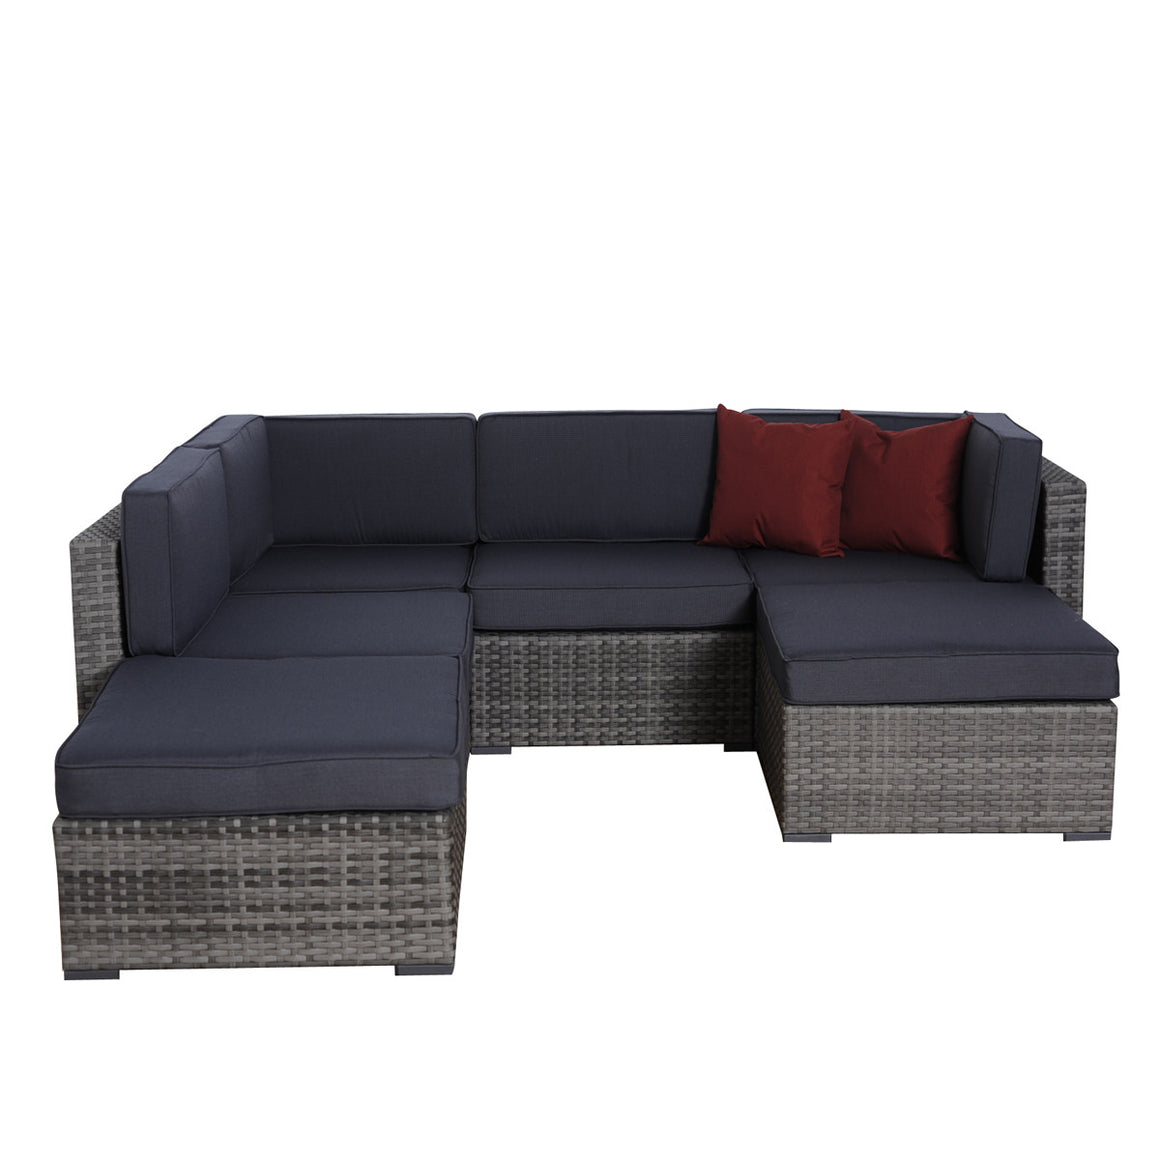 Clermont 6 pc Grey Wicker Seating Set with Grey Cushions , International Home Miami- grayburd